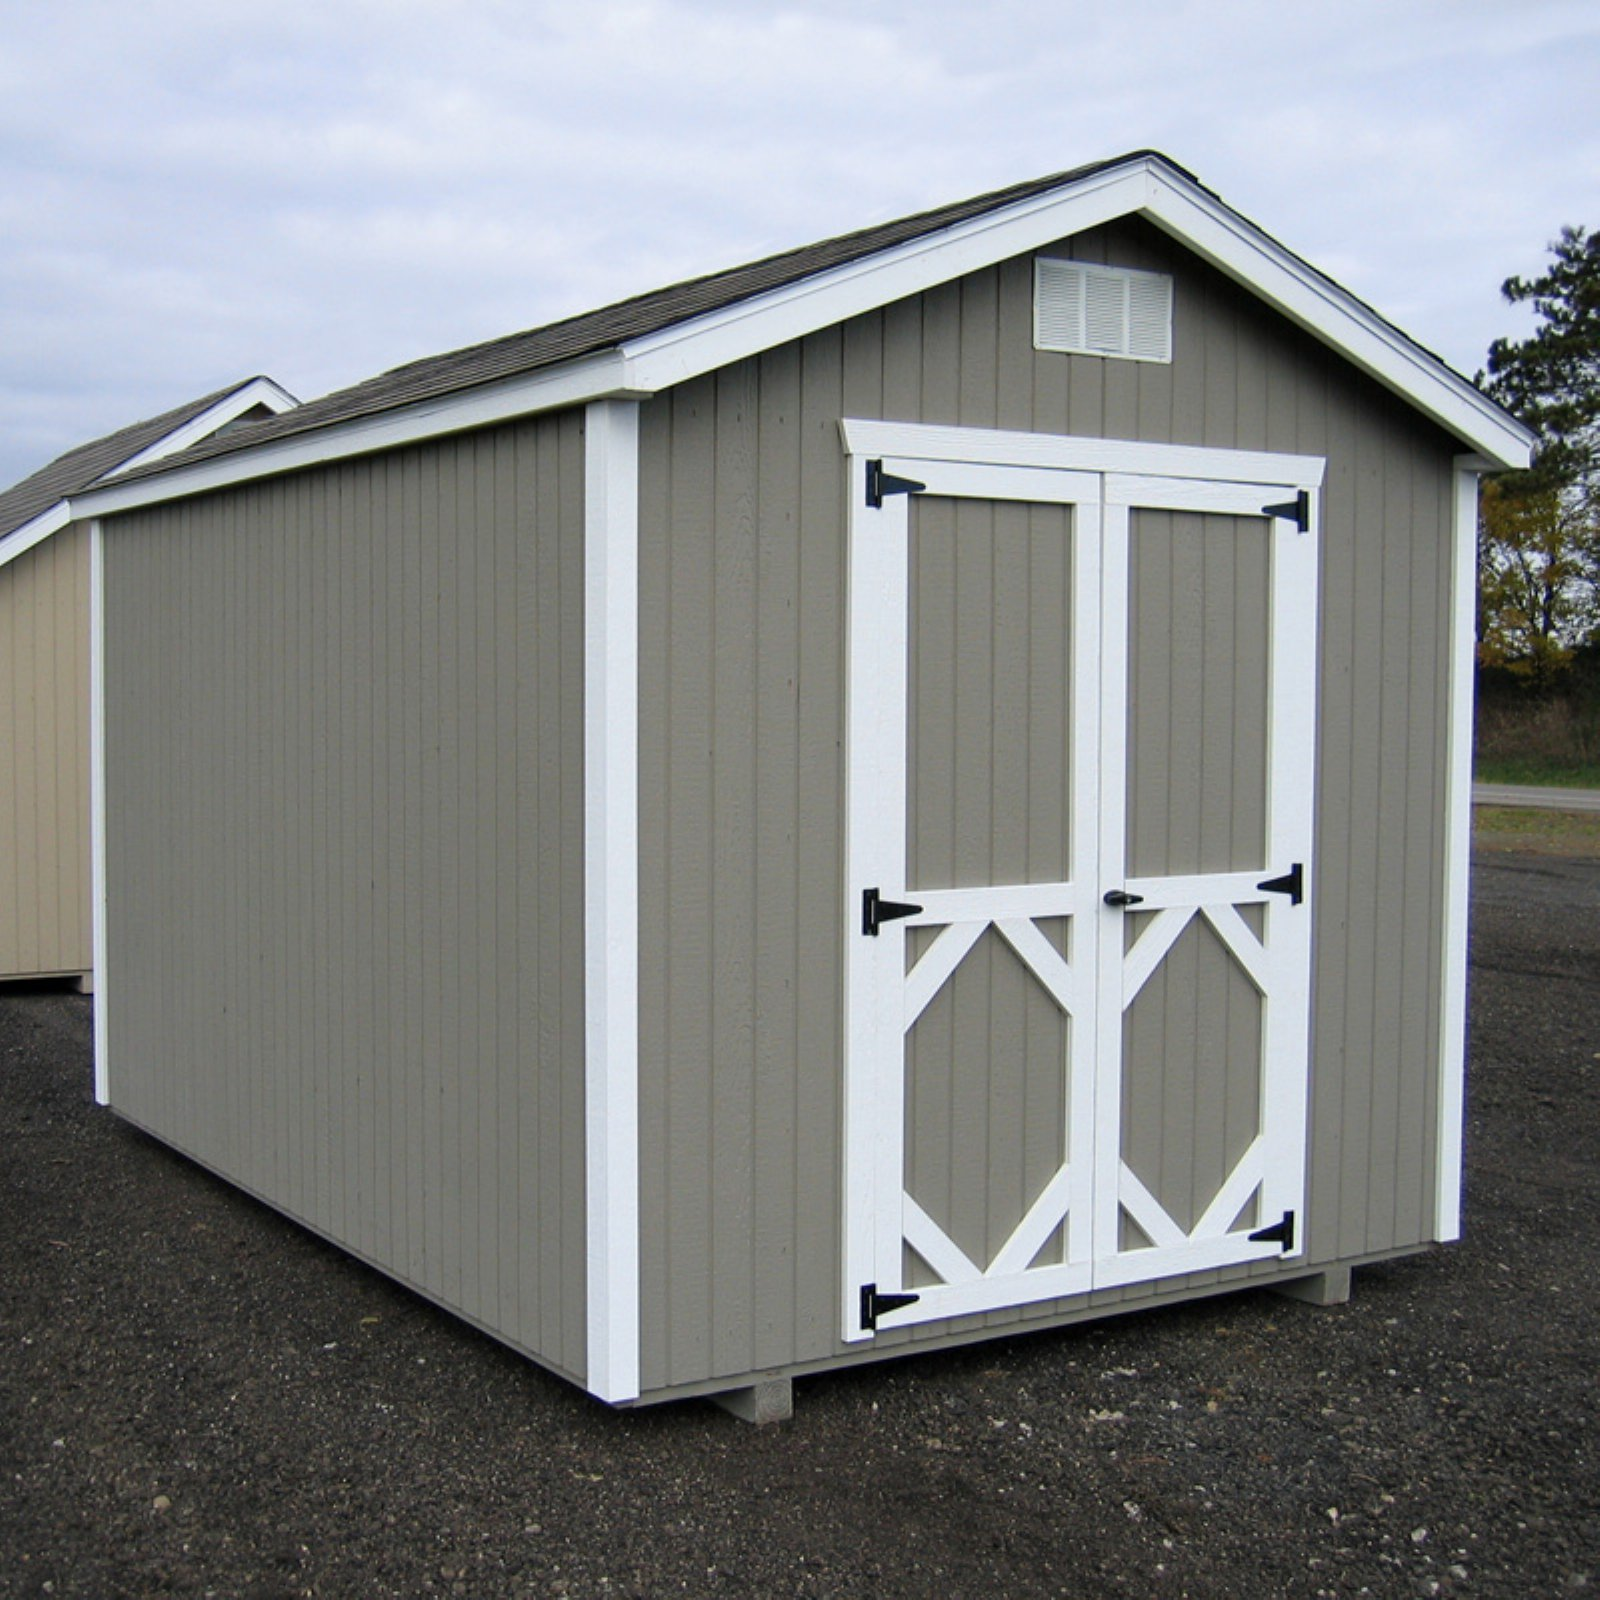 Little Cottage 8 x 10 ft. Classic Wood Gable Panelized Storage Shed